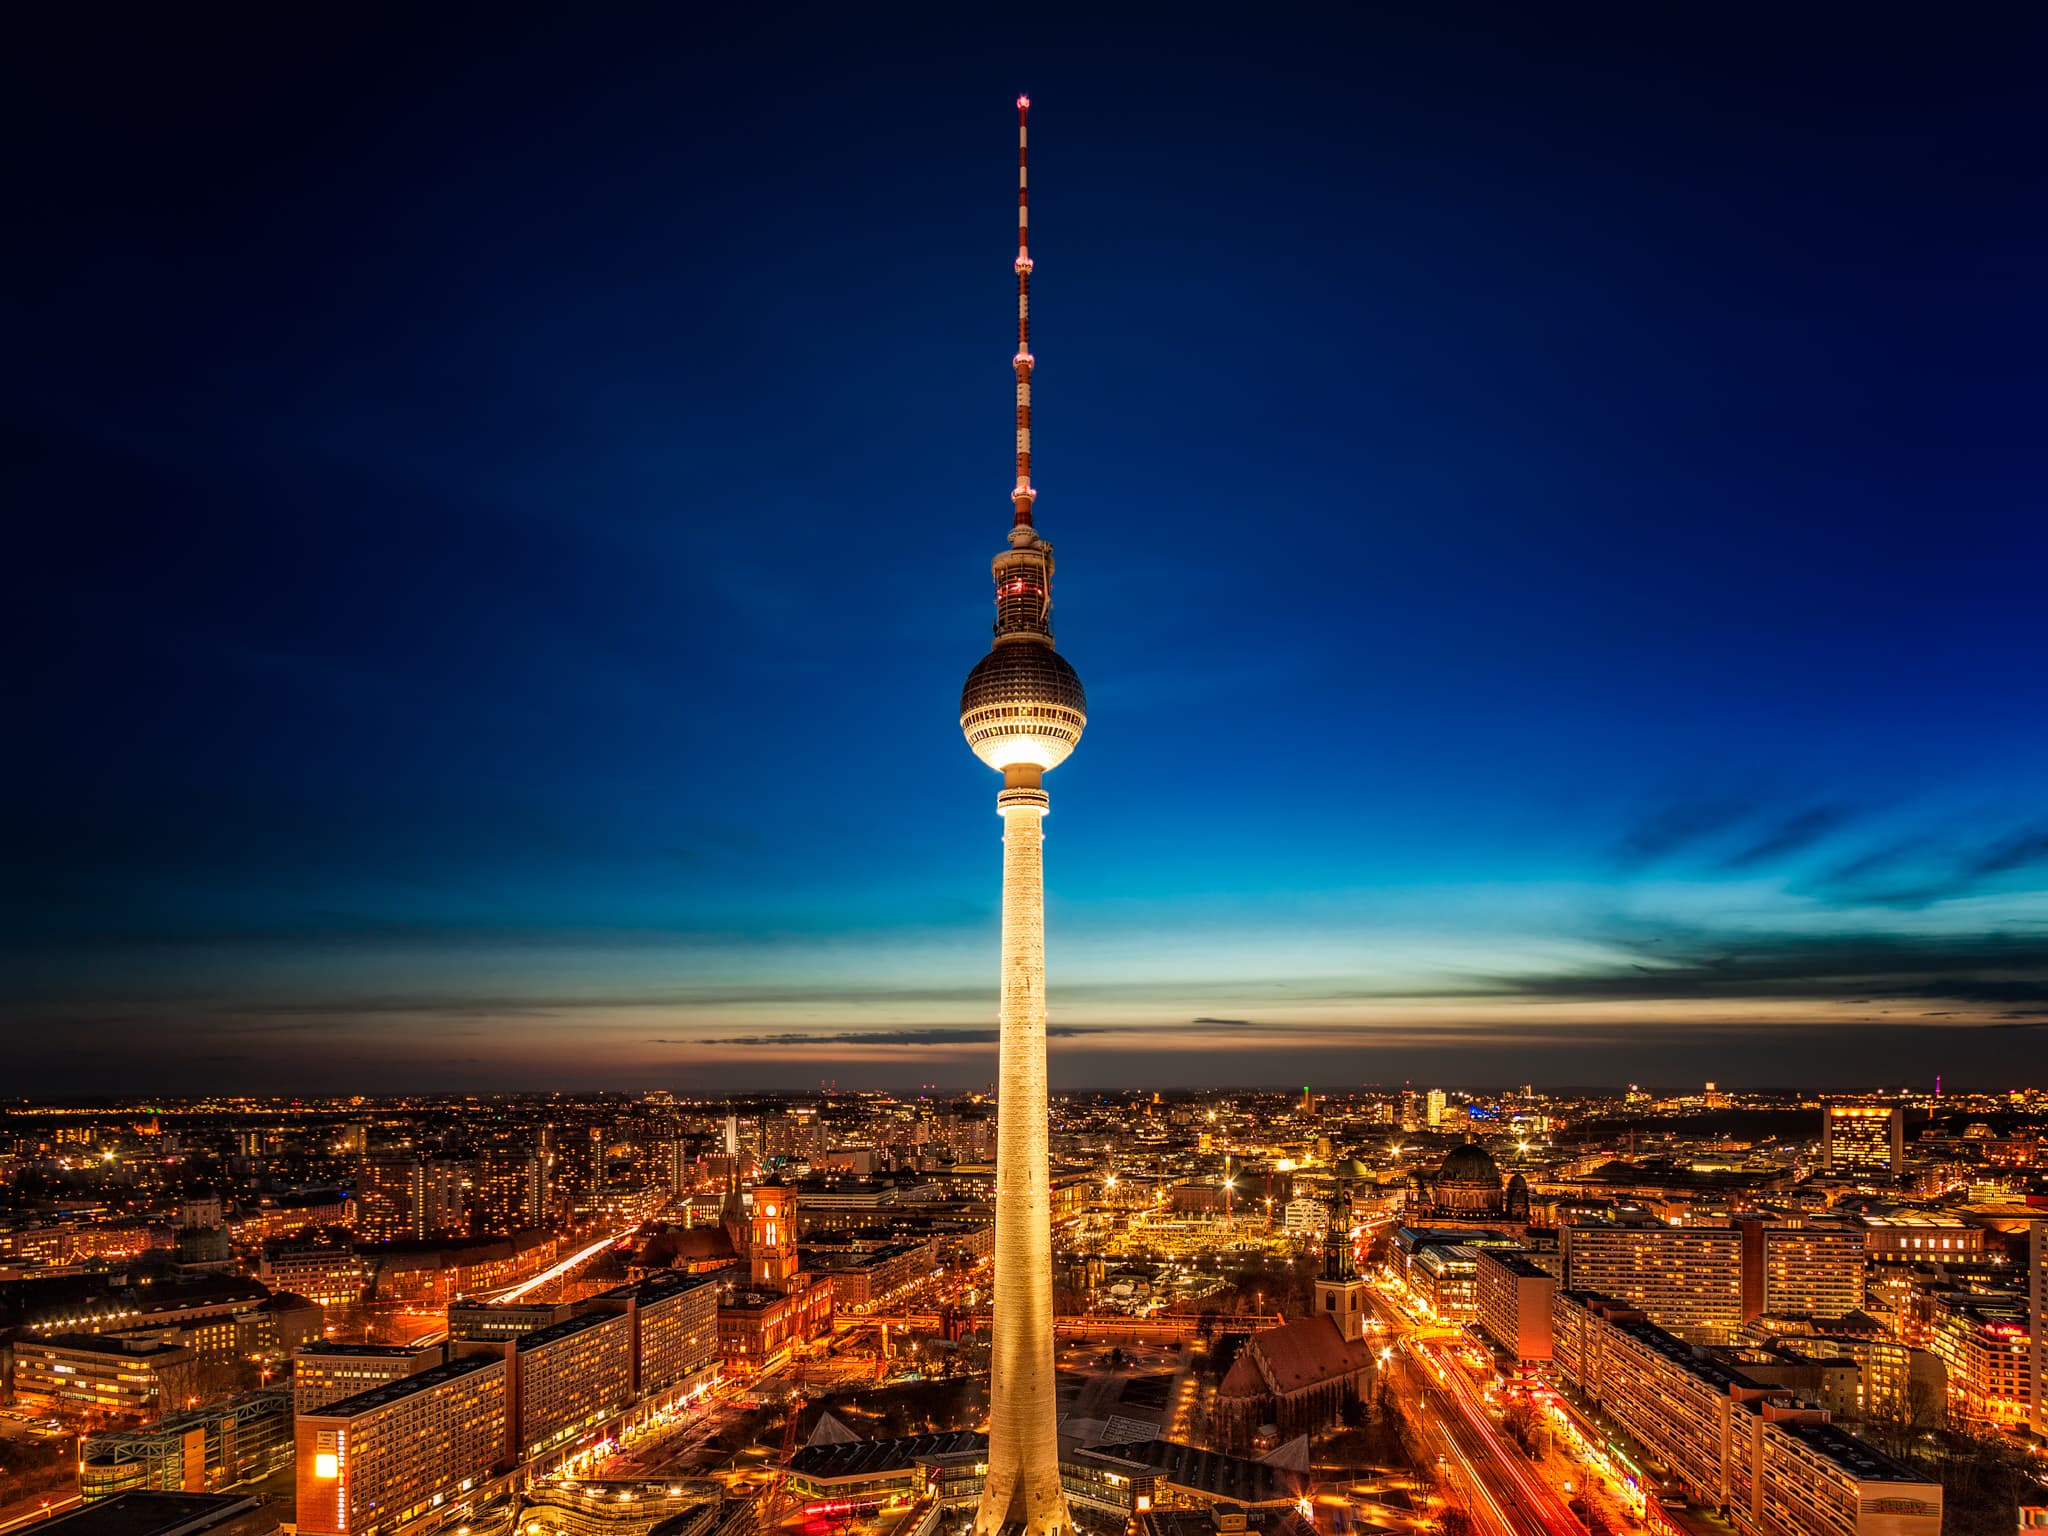 TV Tower at Night from Park Inn by Radisson | Berlin, Germany